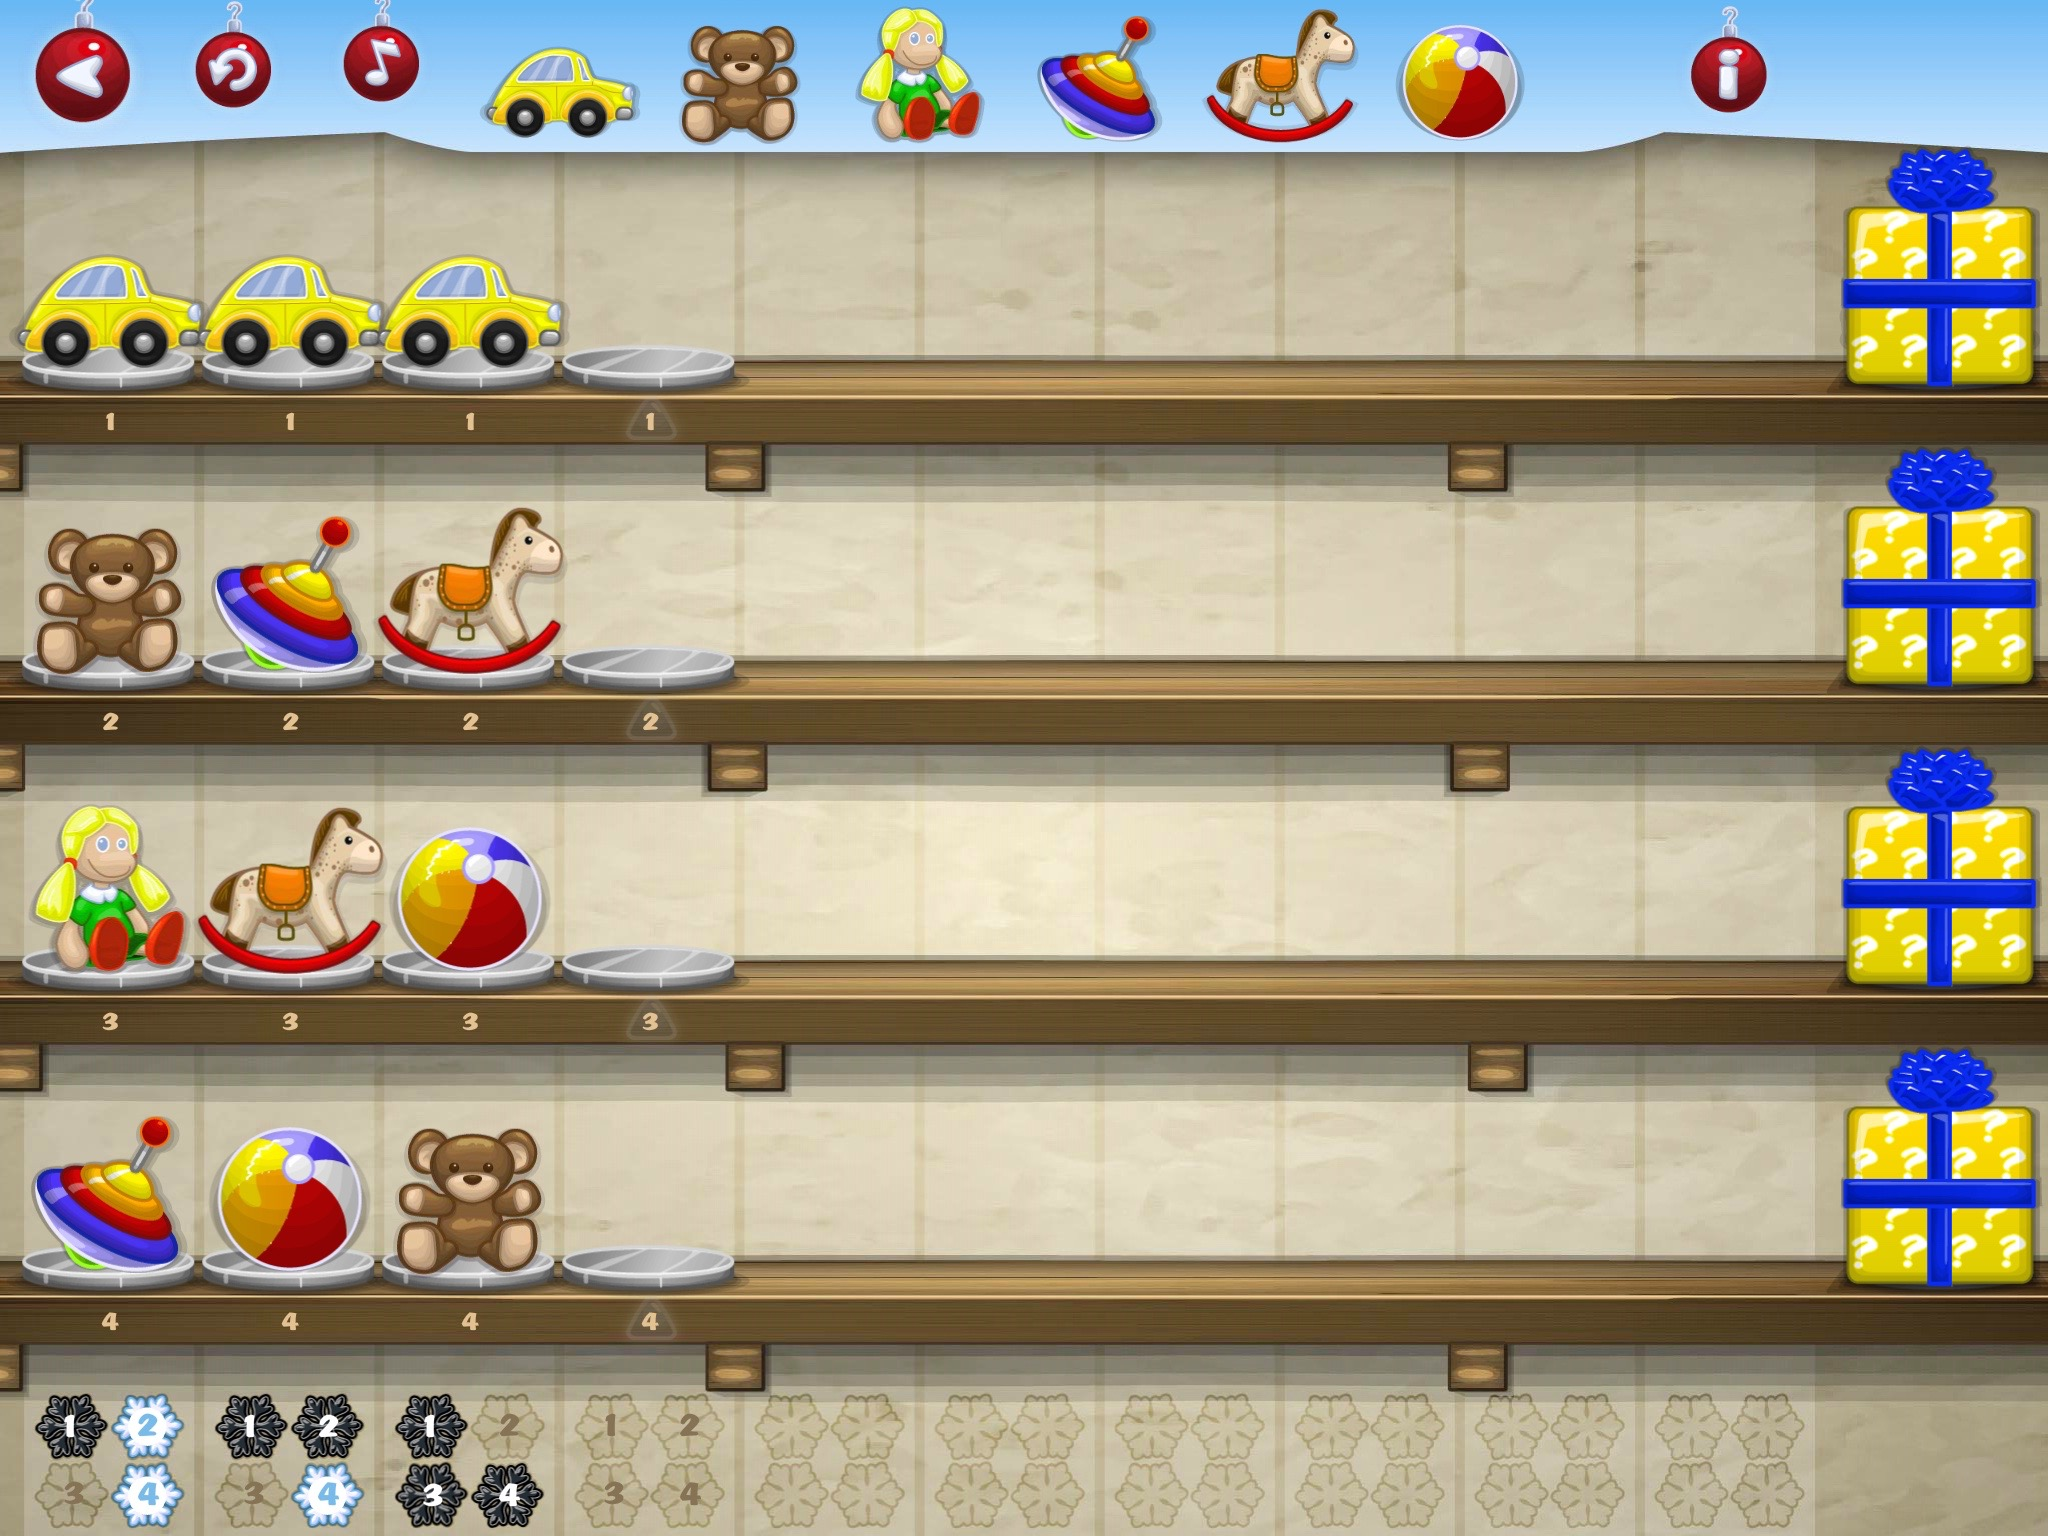 Feiertag_2_App_For_Kinder_Jan_Essig_XMAS_Games_2